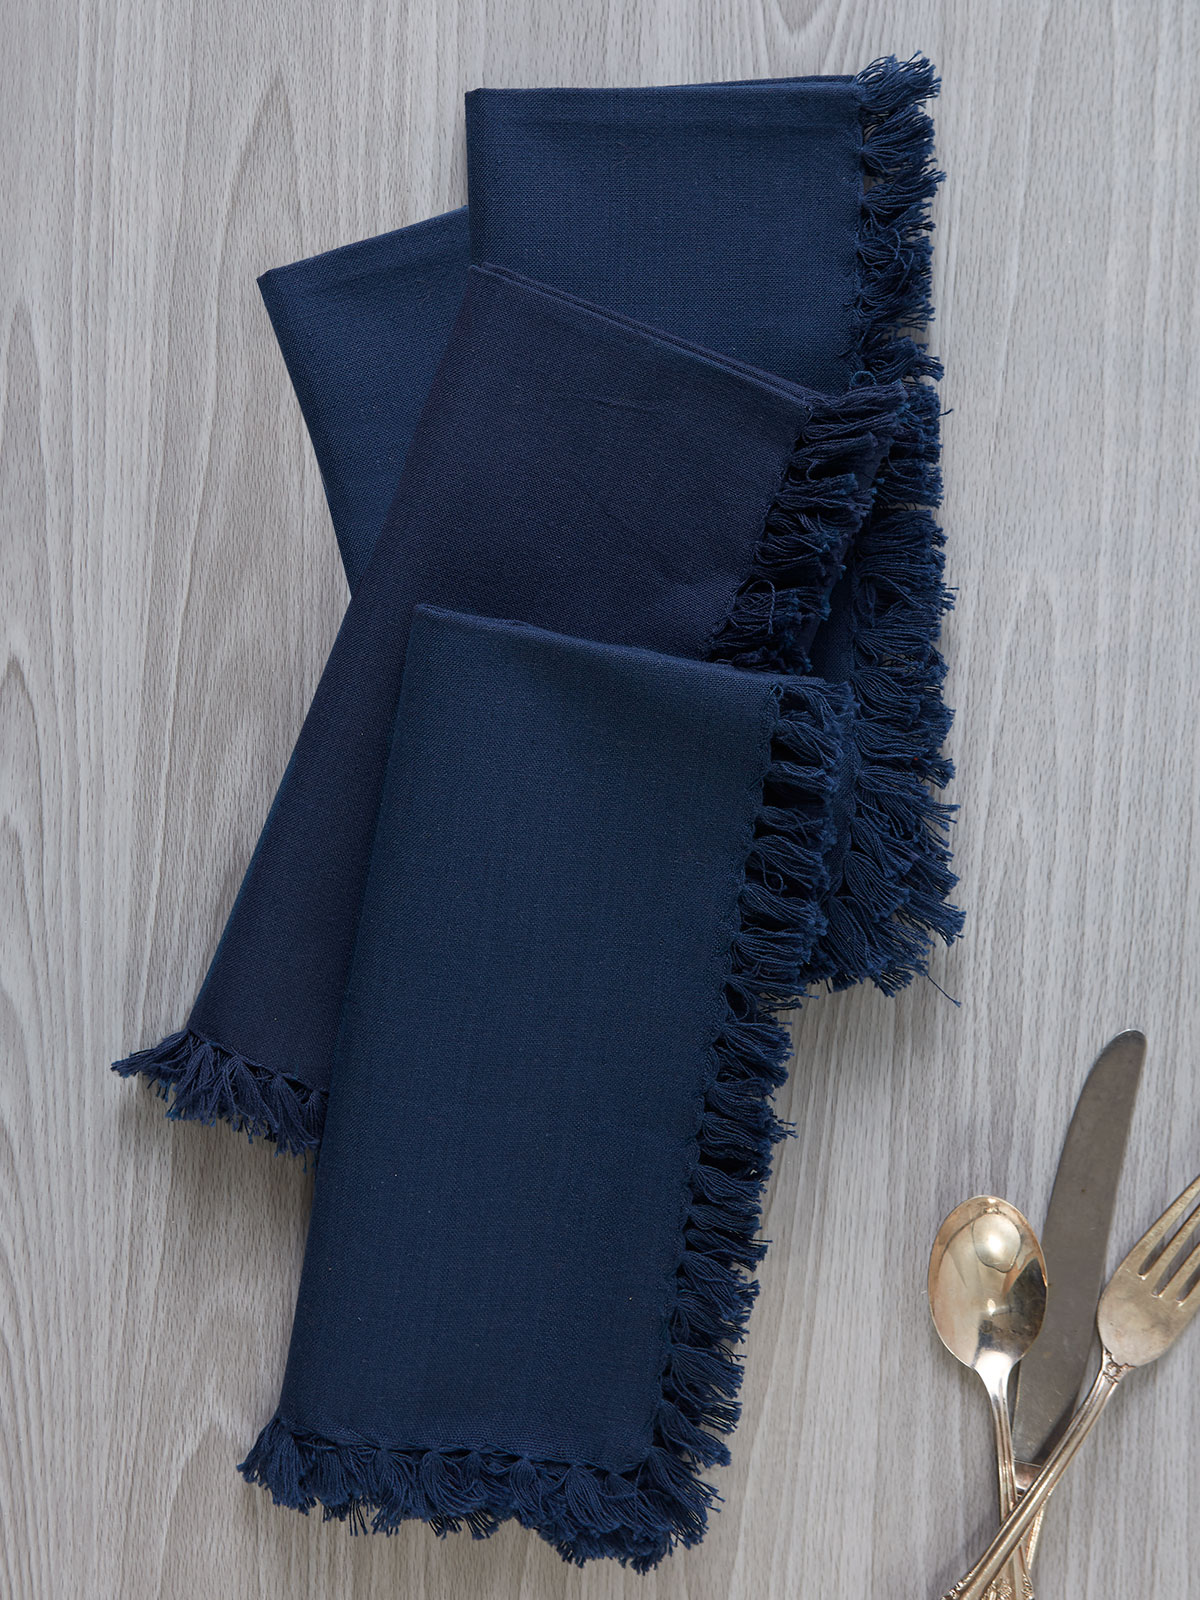 Essential Napkin Set of 4 - Dark Blue